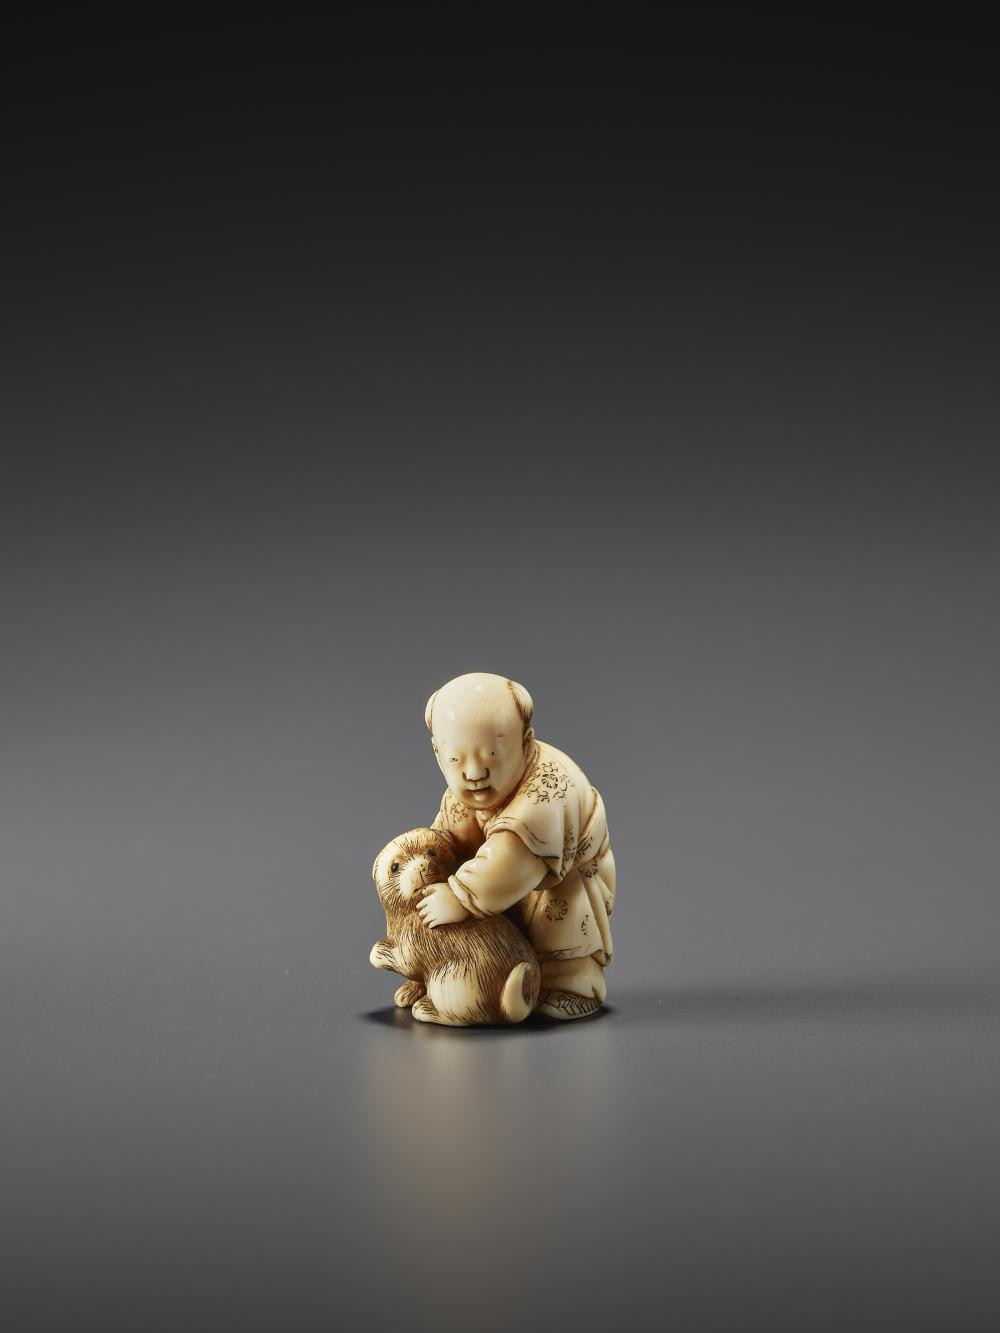 AN IVORY NETSUKE OF A CHINESE BOY WITH PUPPY BY TOMOCHIKA